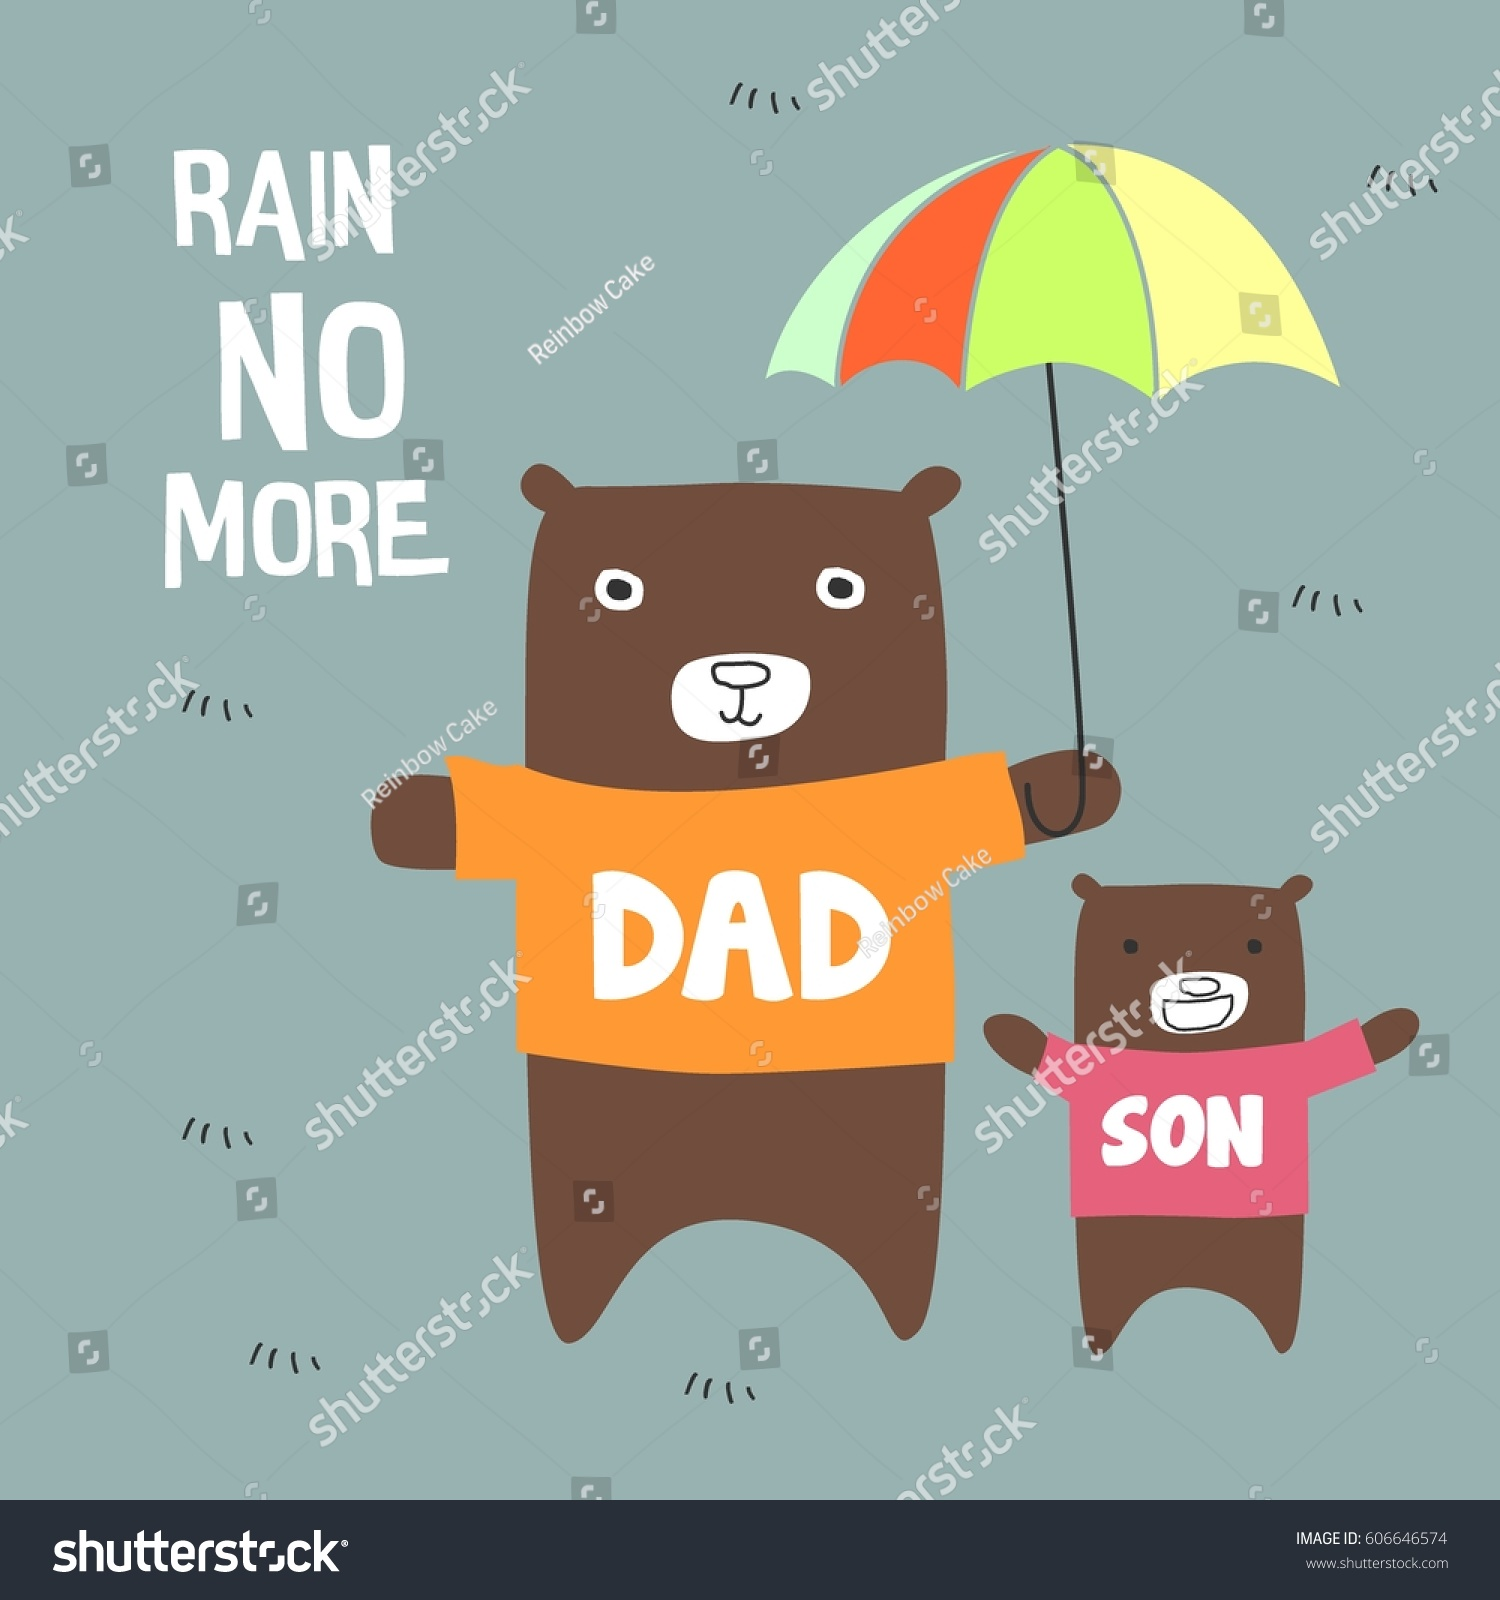 dad son bear standing holding umbrella stock vector (royalty free